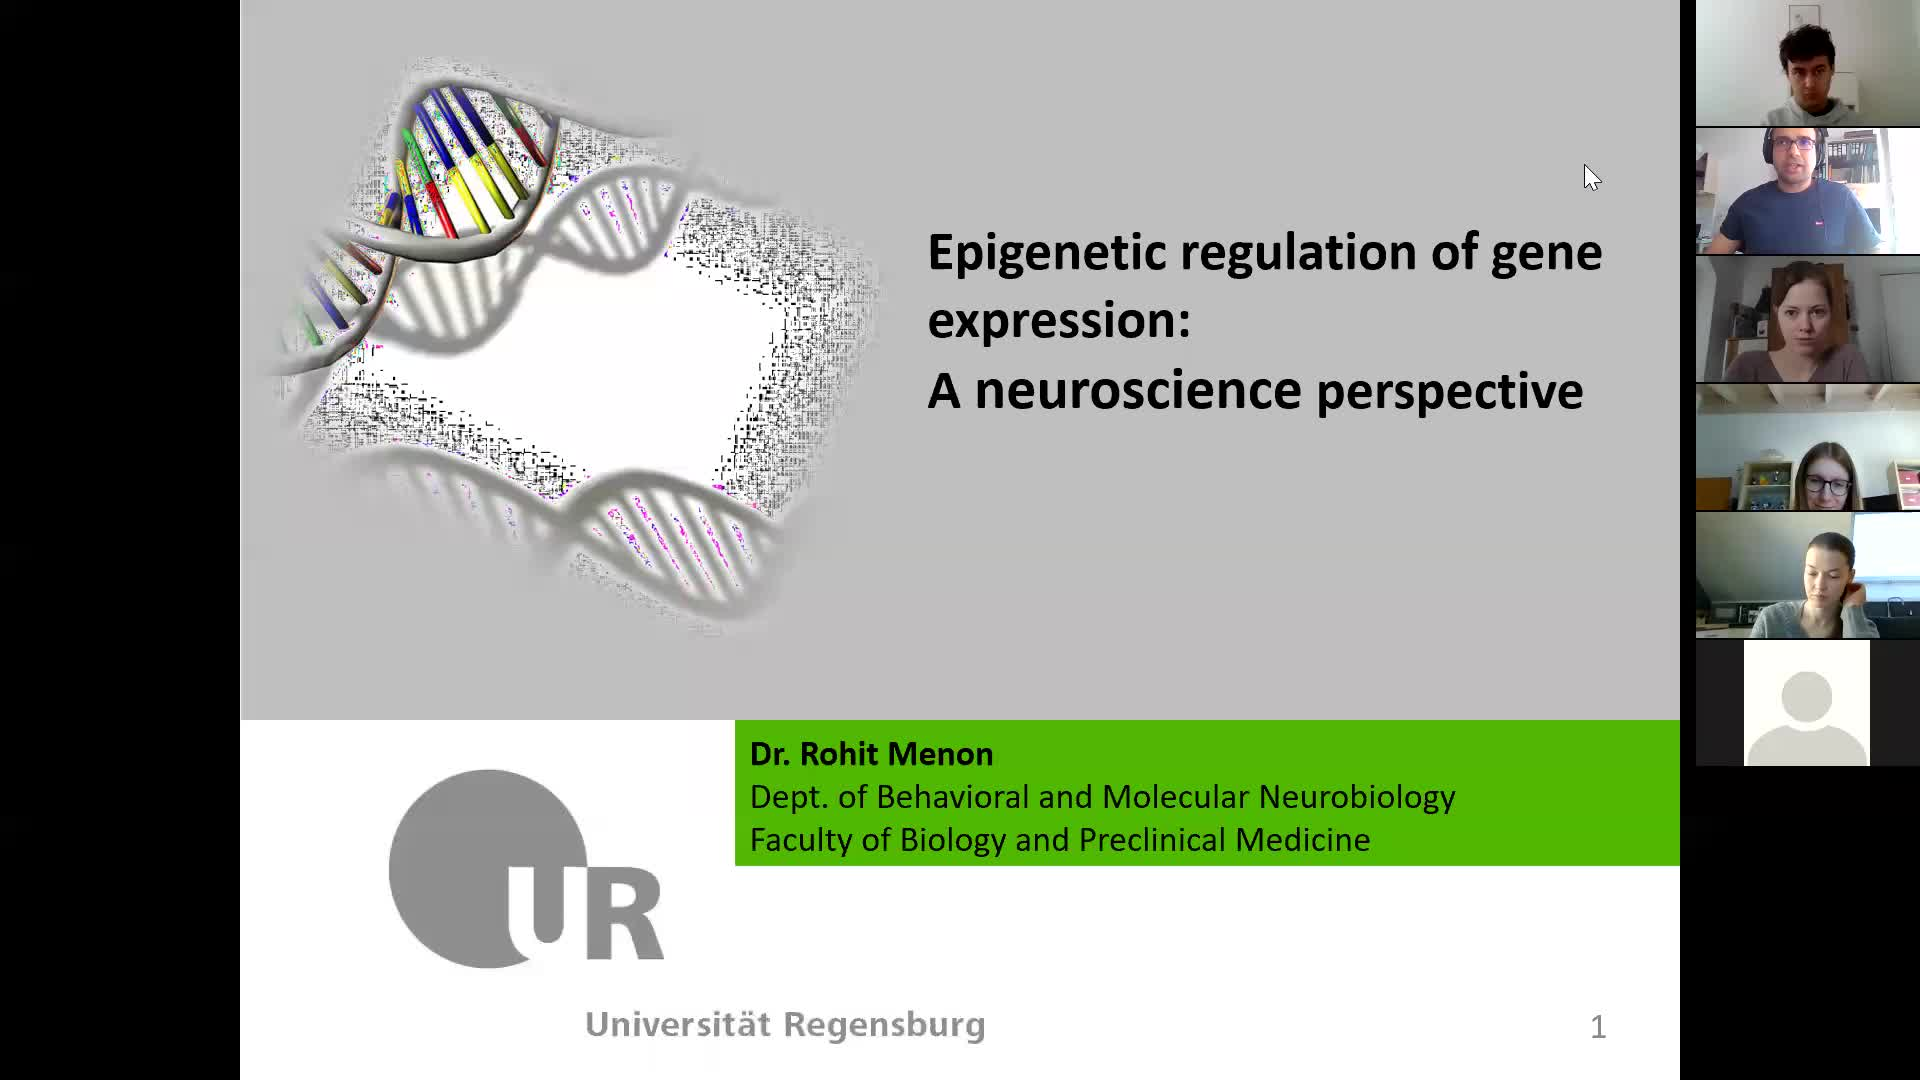 Epigenetic regulation of gene expression: a neuroscience perspective